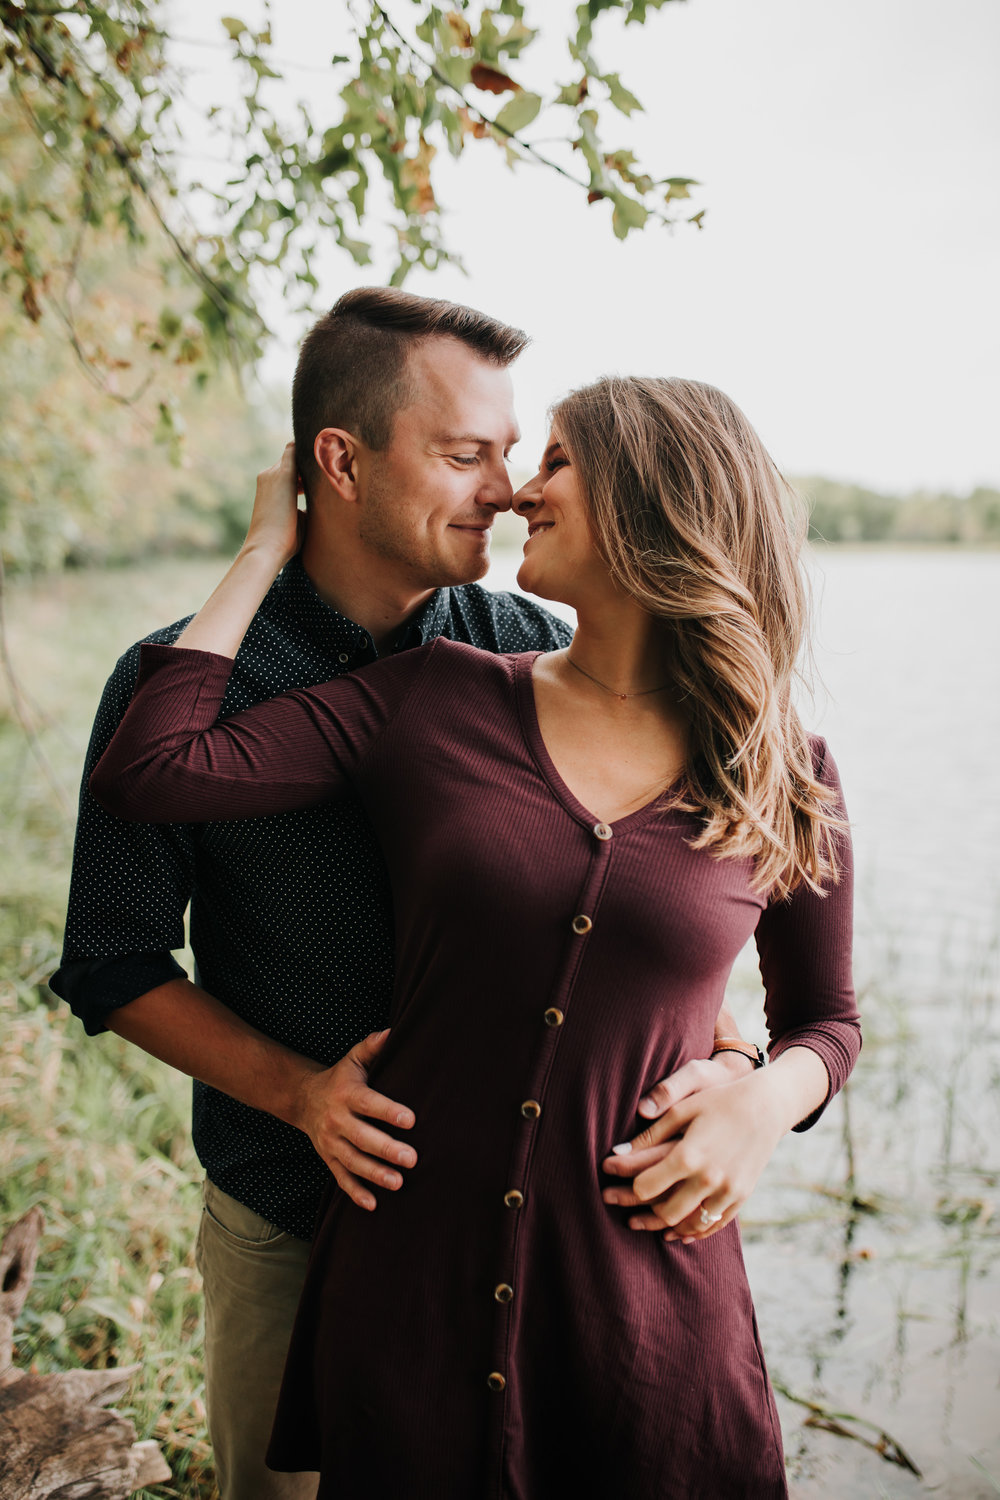 Paige & Nick - Engaged - Nathaniel Jensen Photography - Omaha Nebraska Wedding Photograper - Omaha Nebraska Engagement Session - Chalco Hills Engagement Session-22.jpg